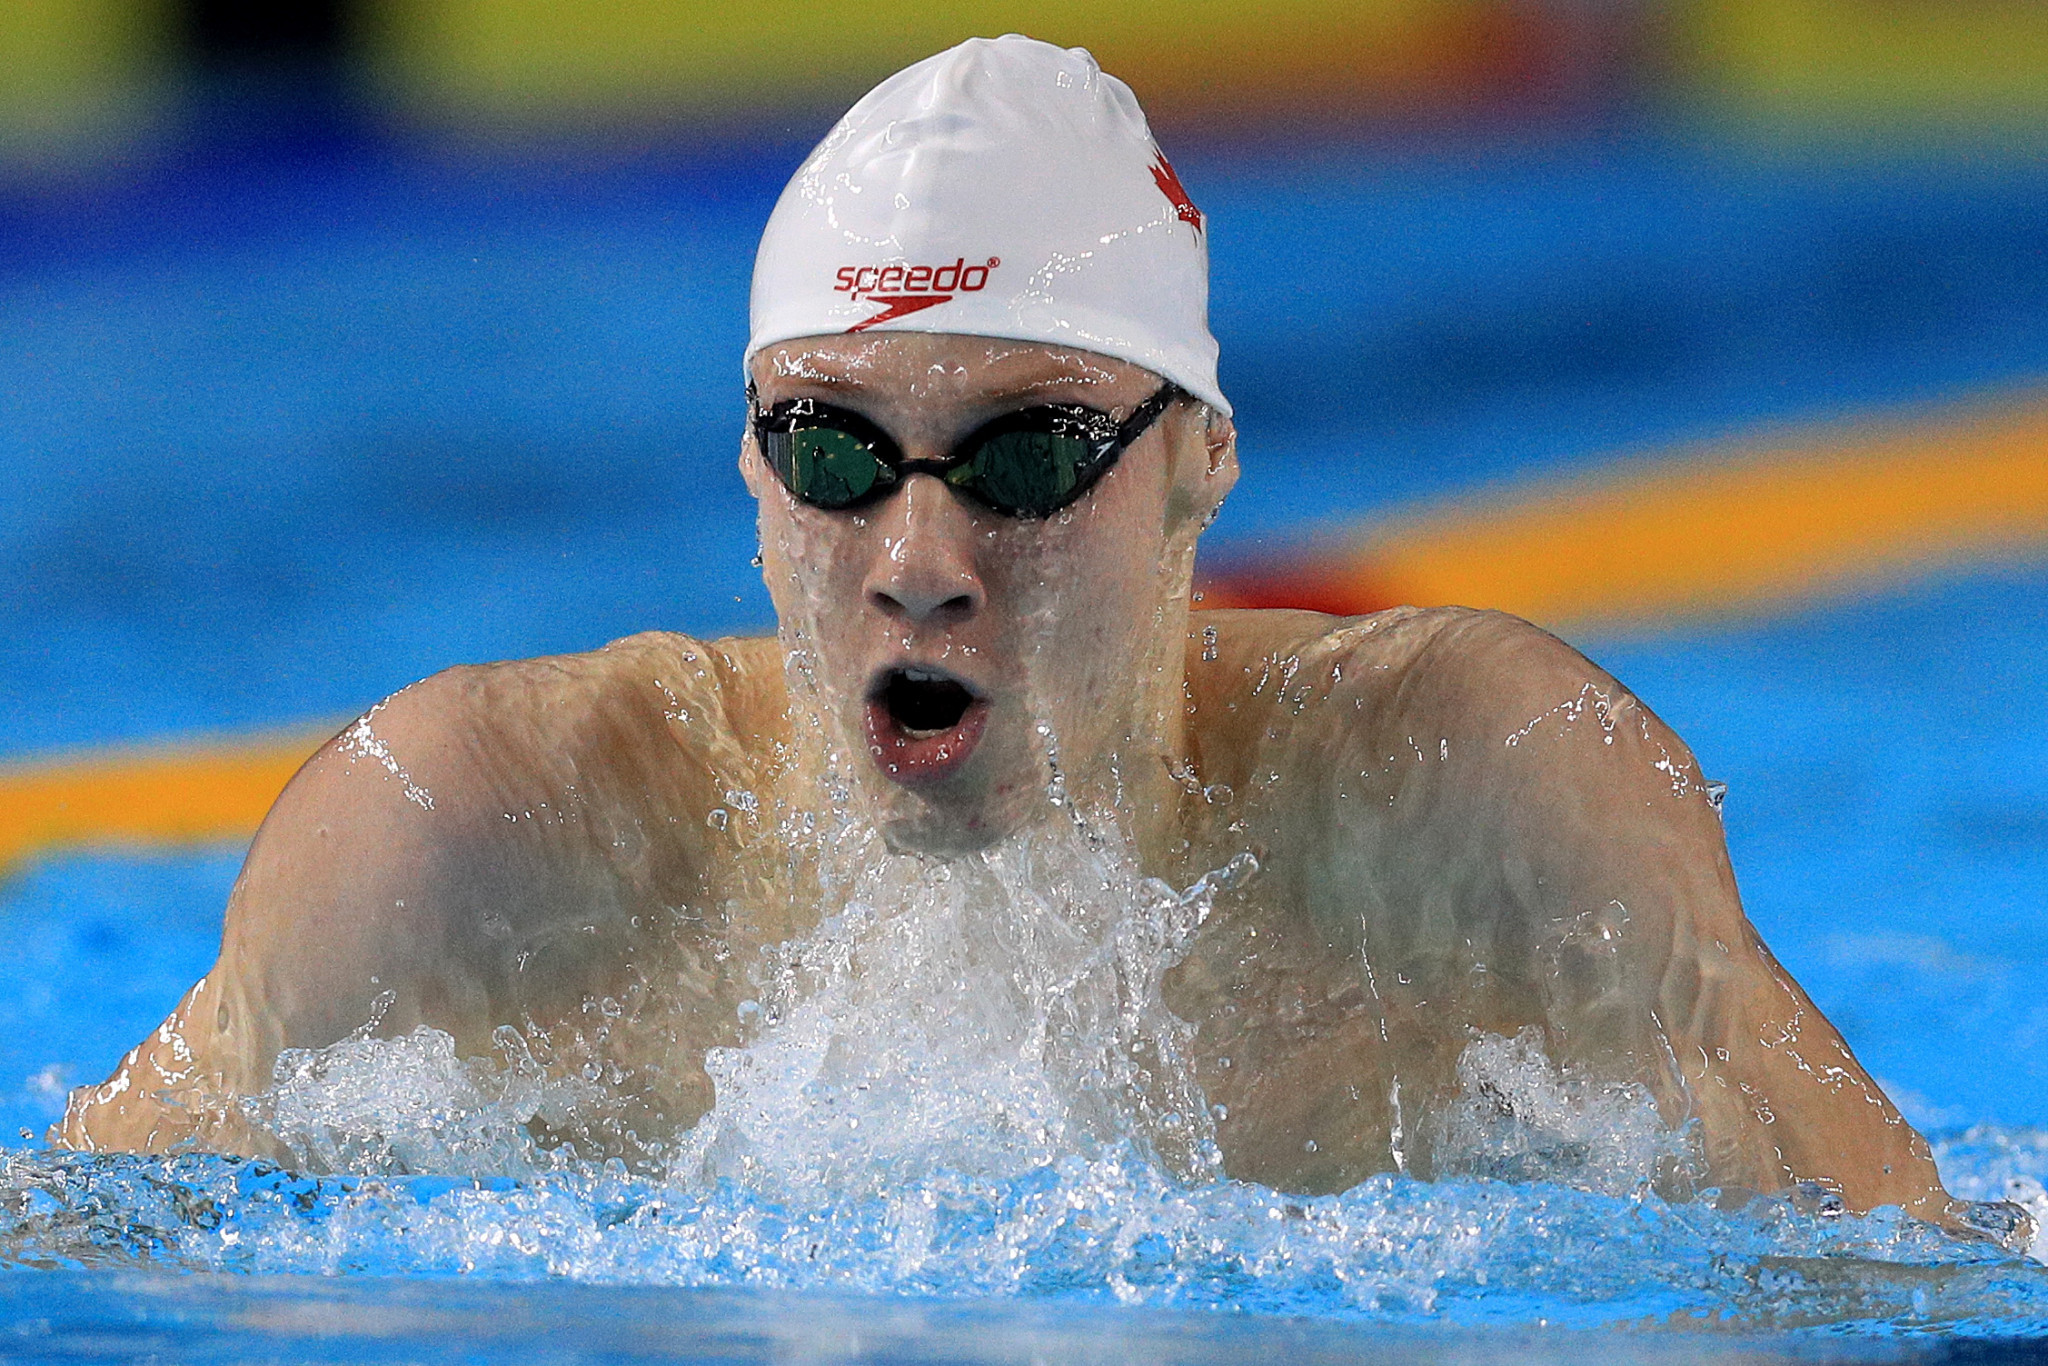 Swimming Canada has named Rob Pettifer as head coach of pool swimming at the 2019 Pan American Games ©Getty Images